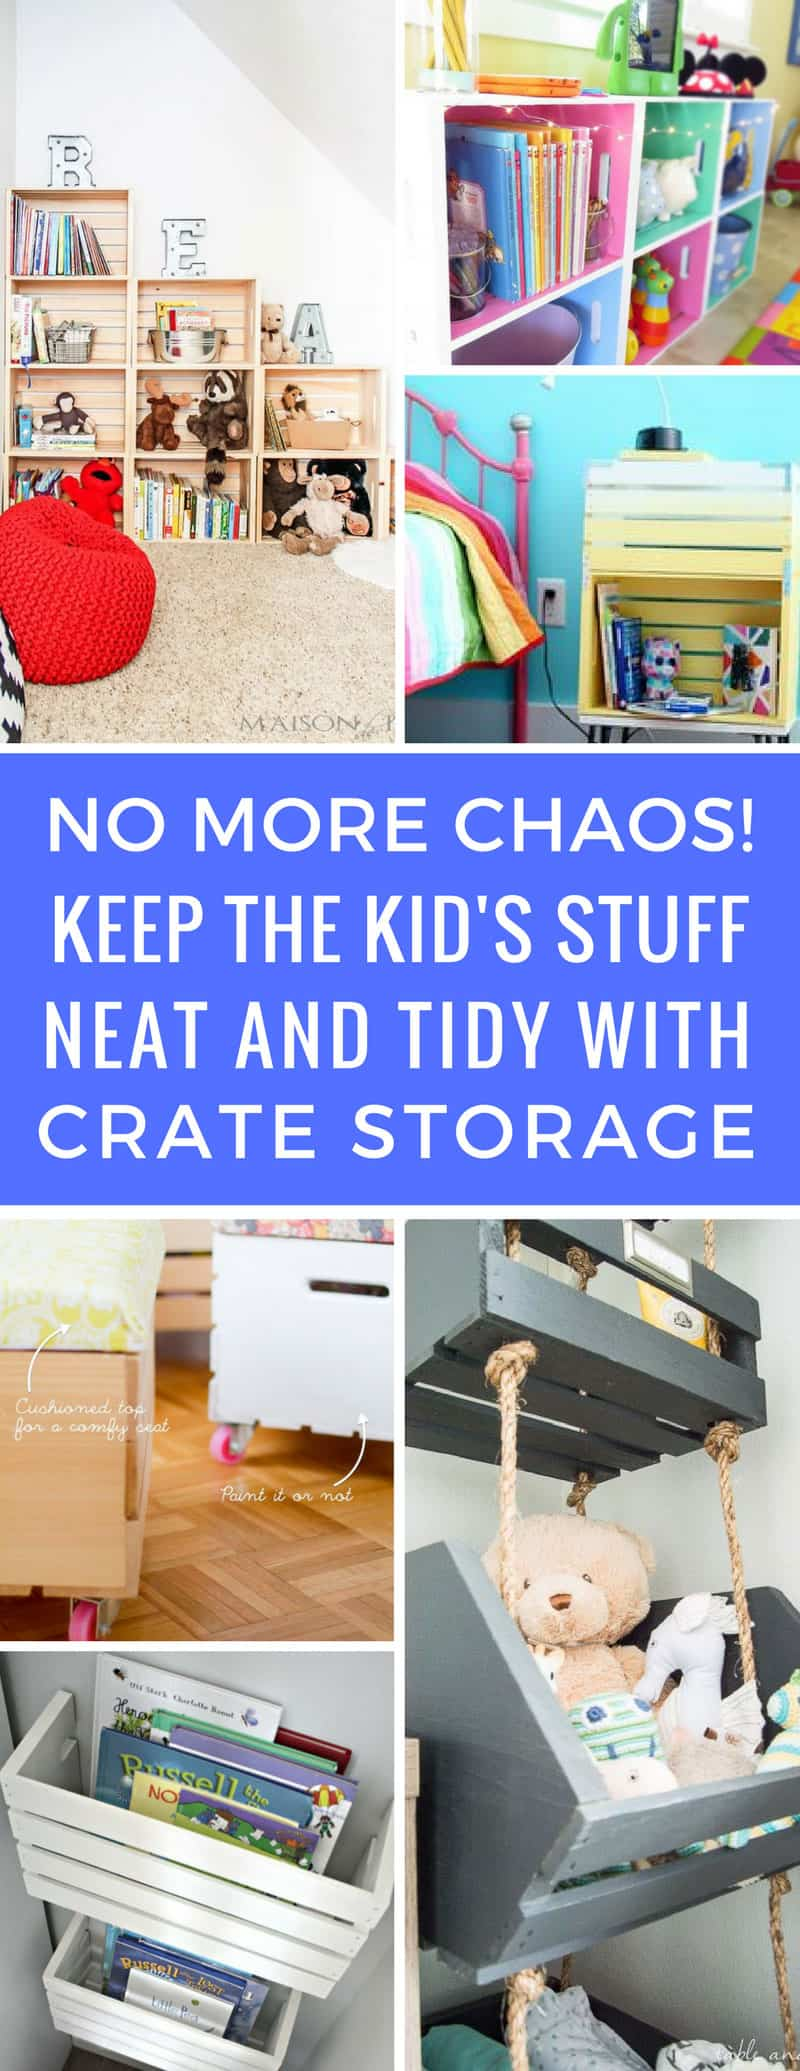 Love these wooden crate storage ideas for kids! I'm always tripping over the kid's stuff and now it can look neat and tidy and not cost the earth! Thanks for sharing!